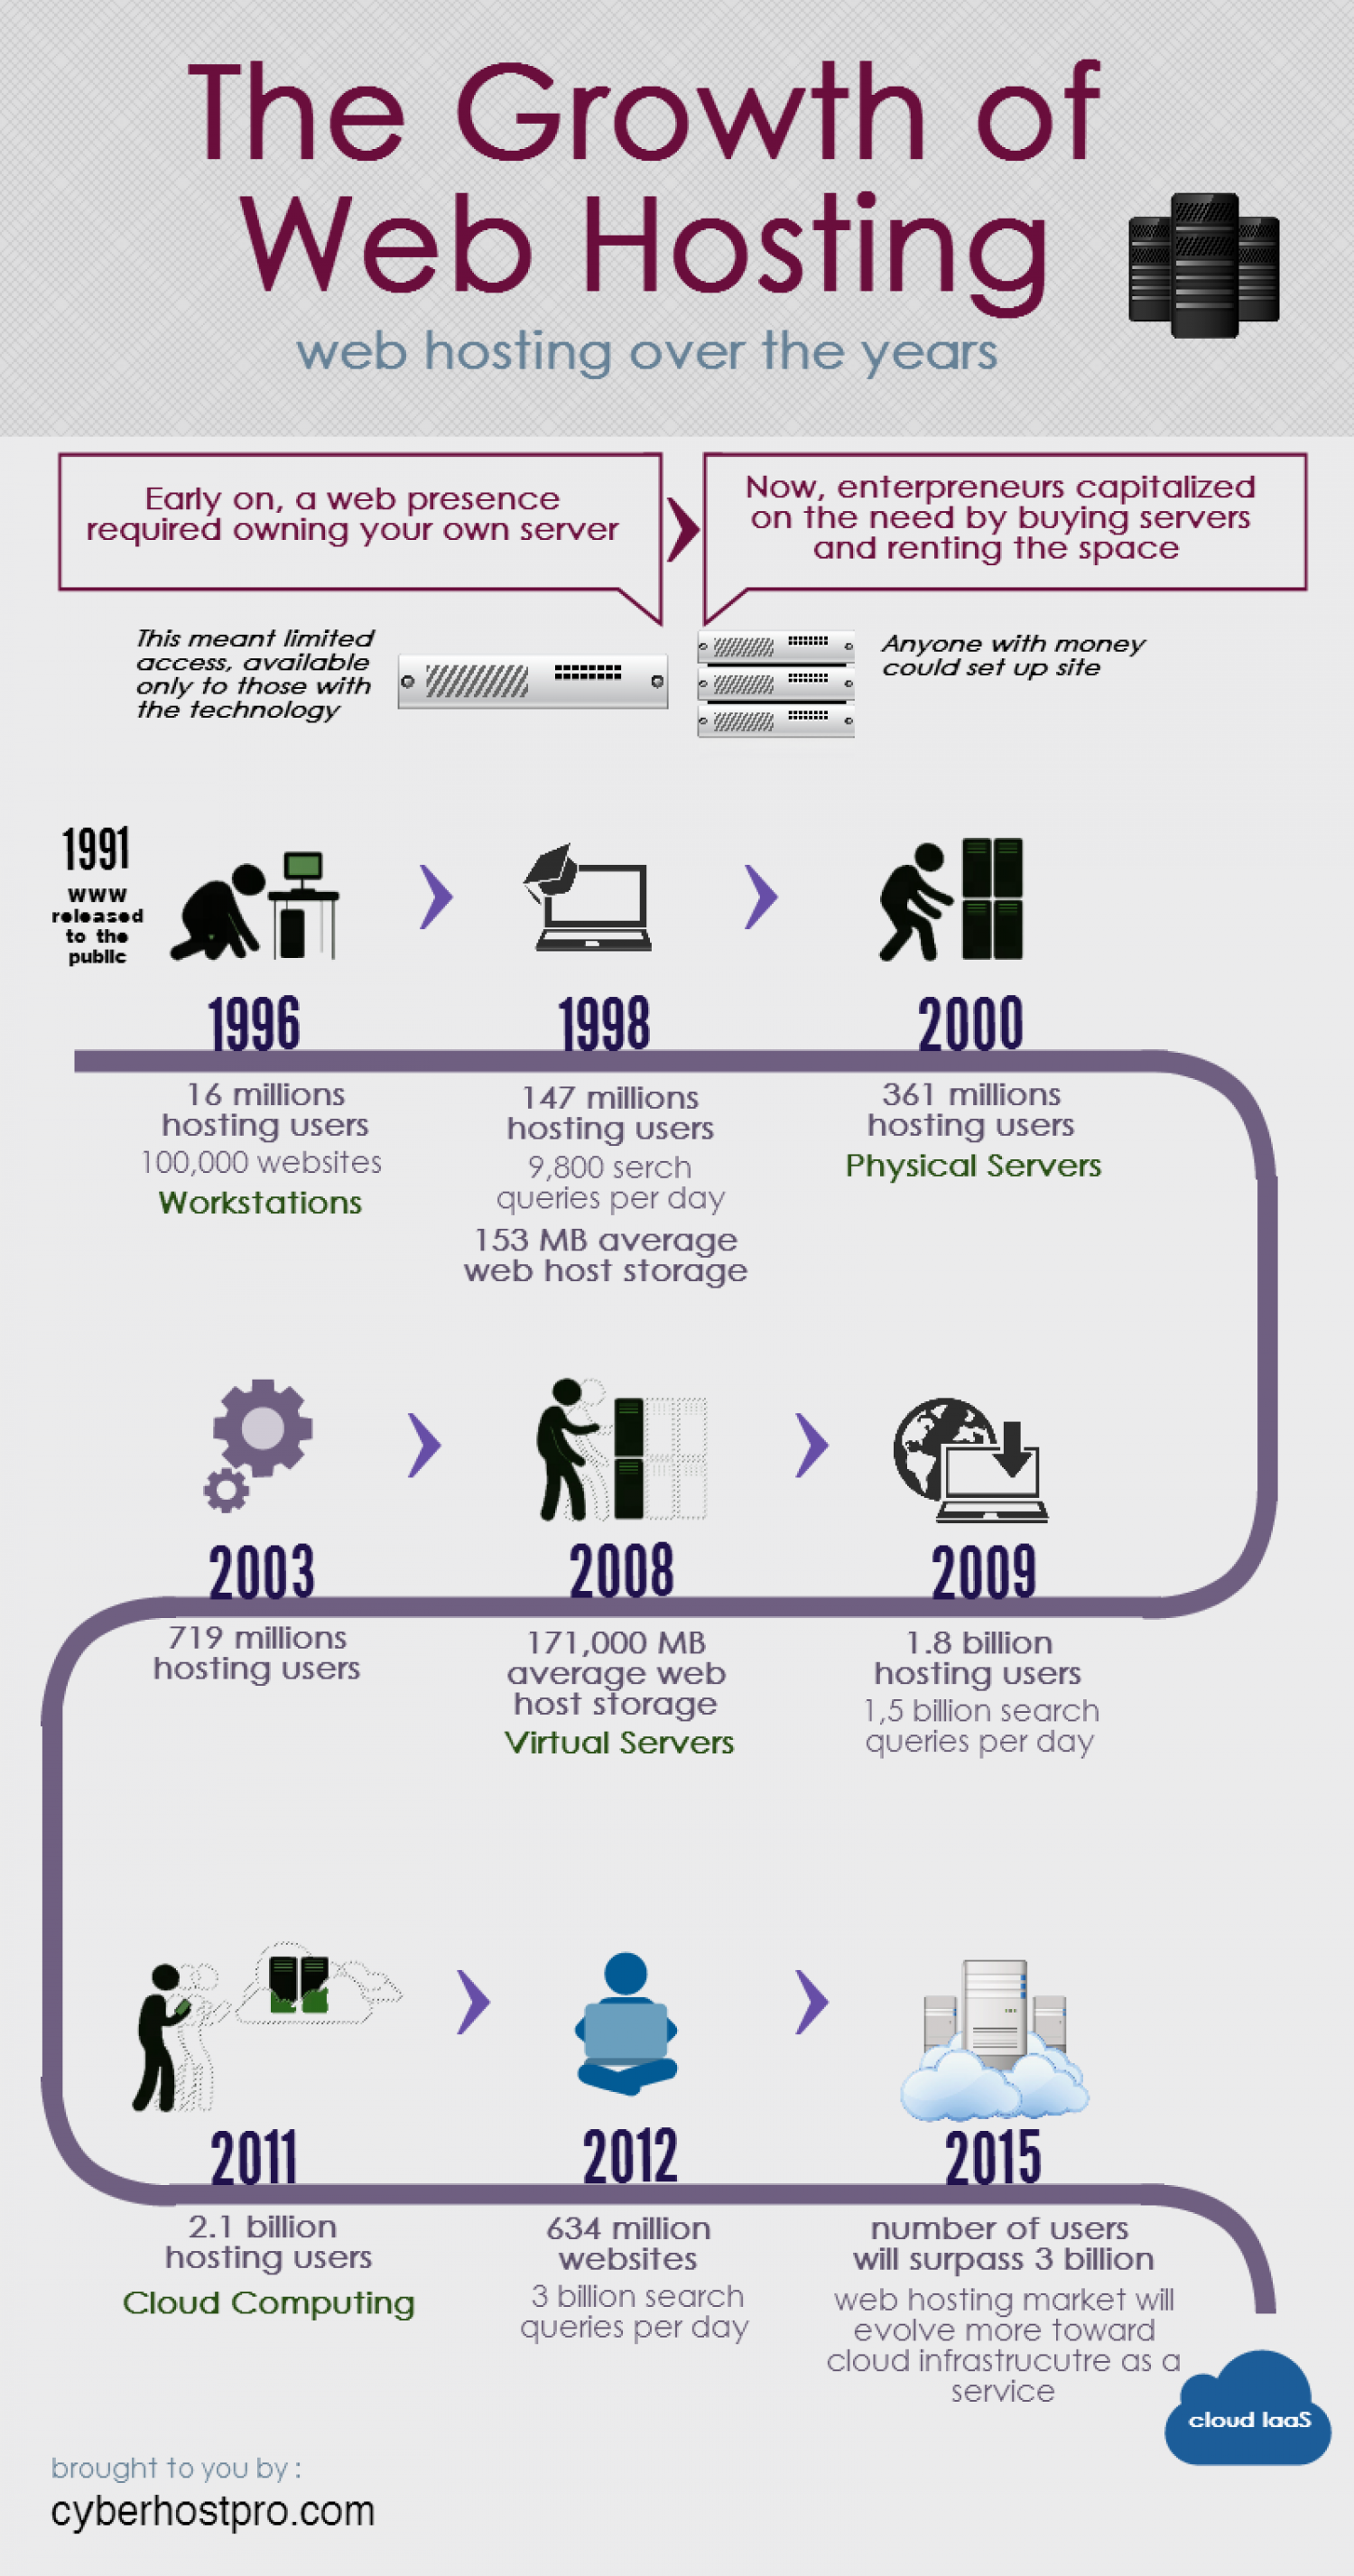 The Growth of Web Hosting Infographic